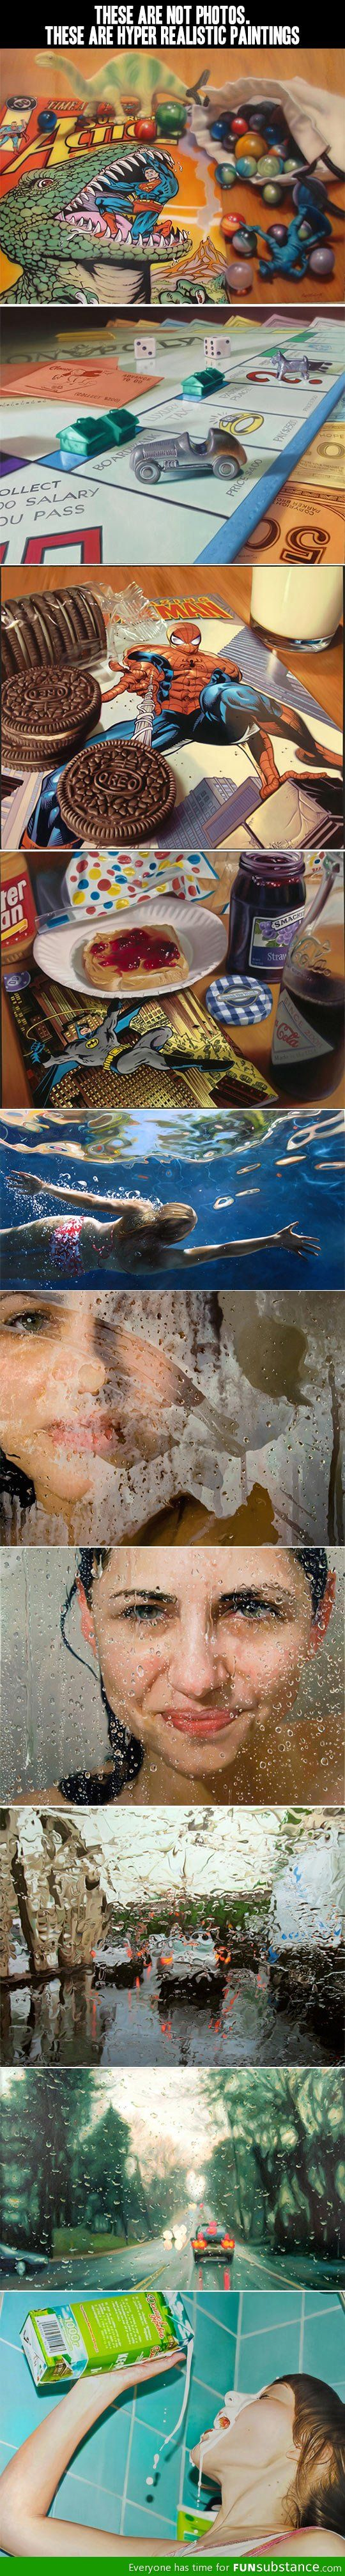 These are not photos, just hyper realistic paintings